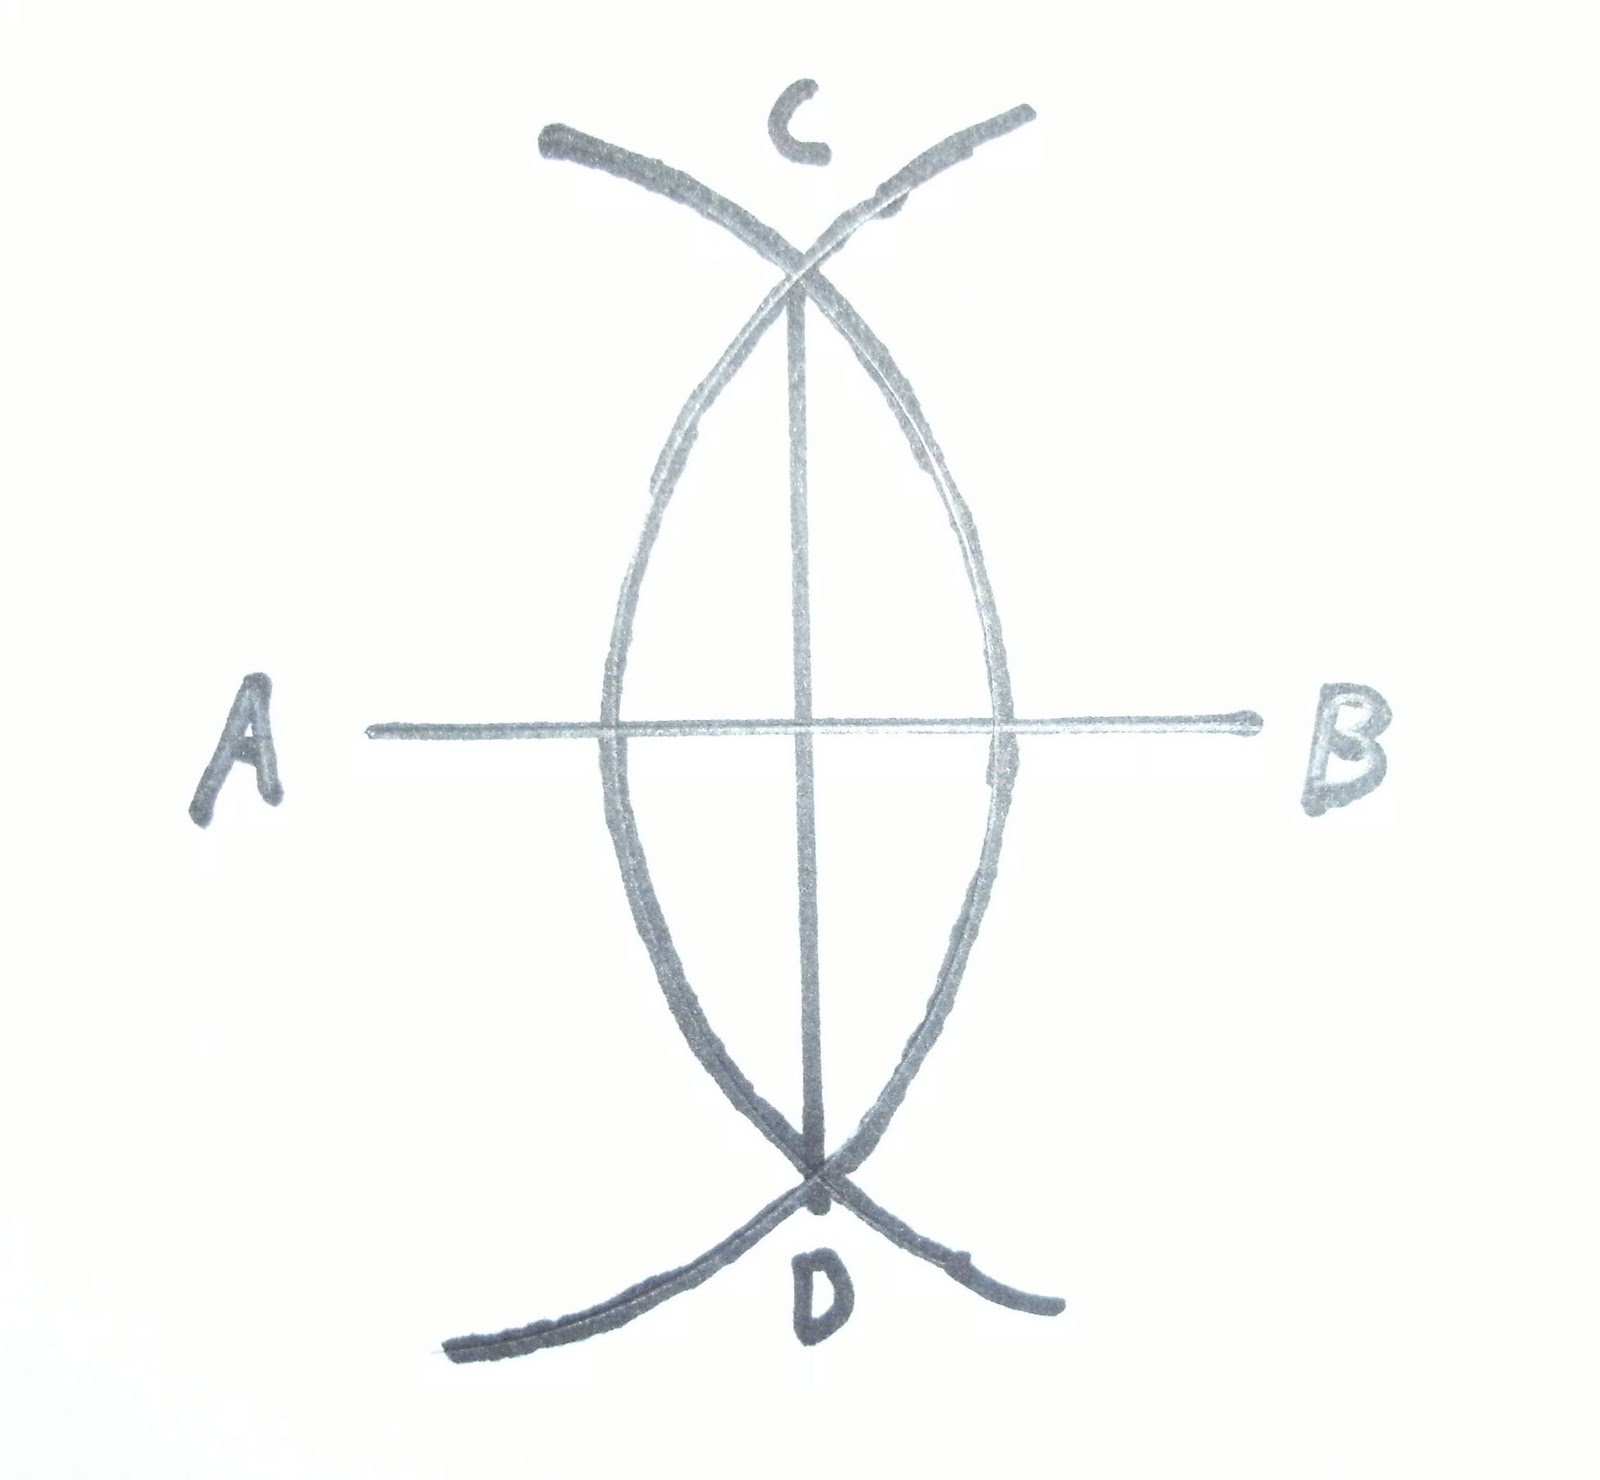 Rocky Meets Euclid Or How To Bisect A Line Segment